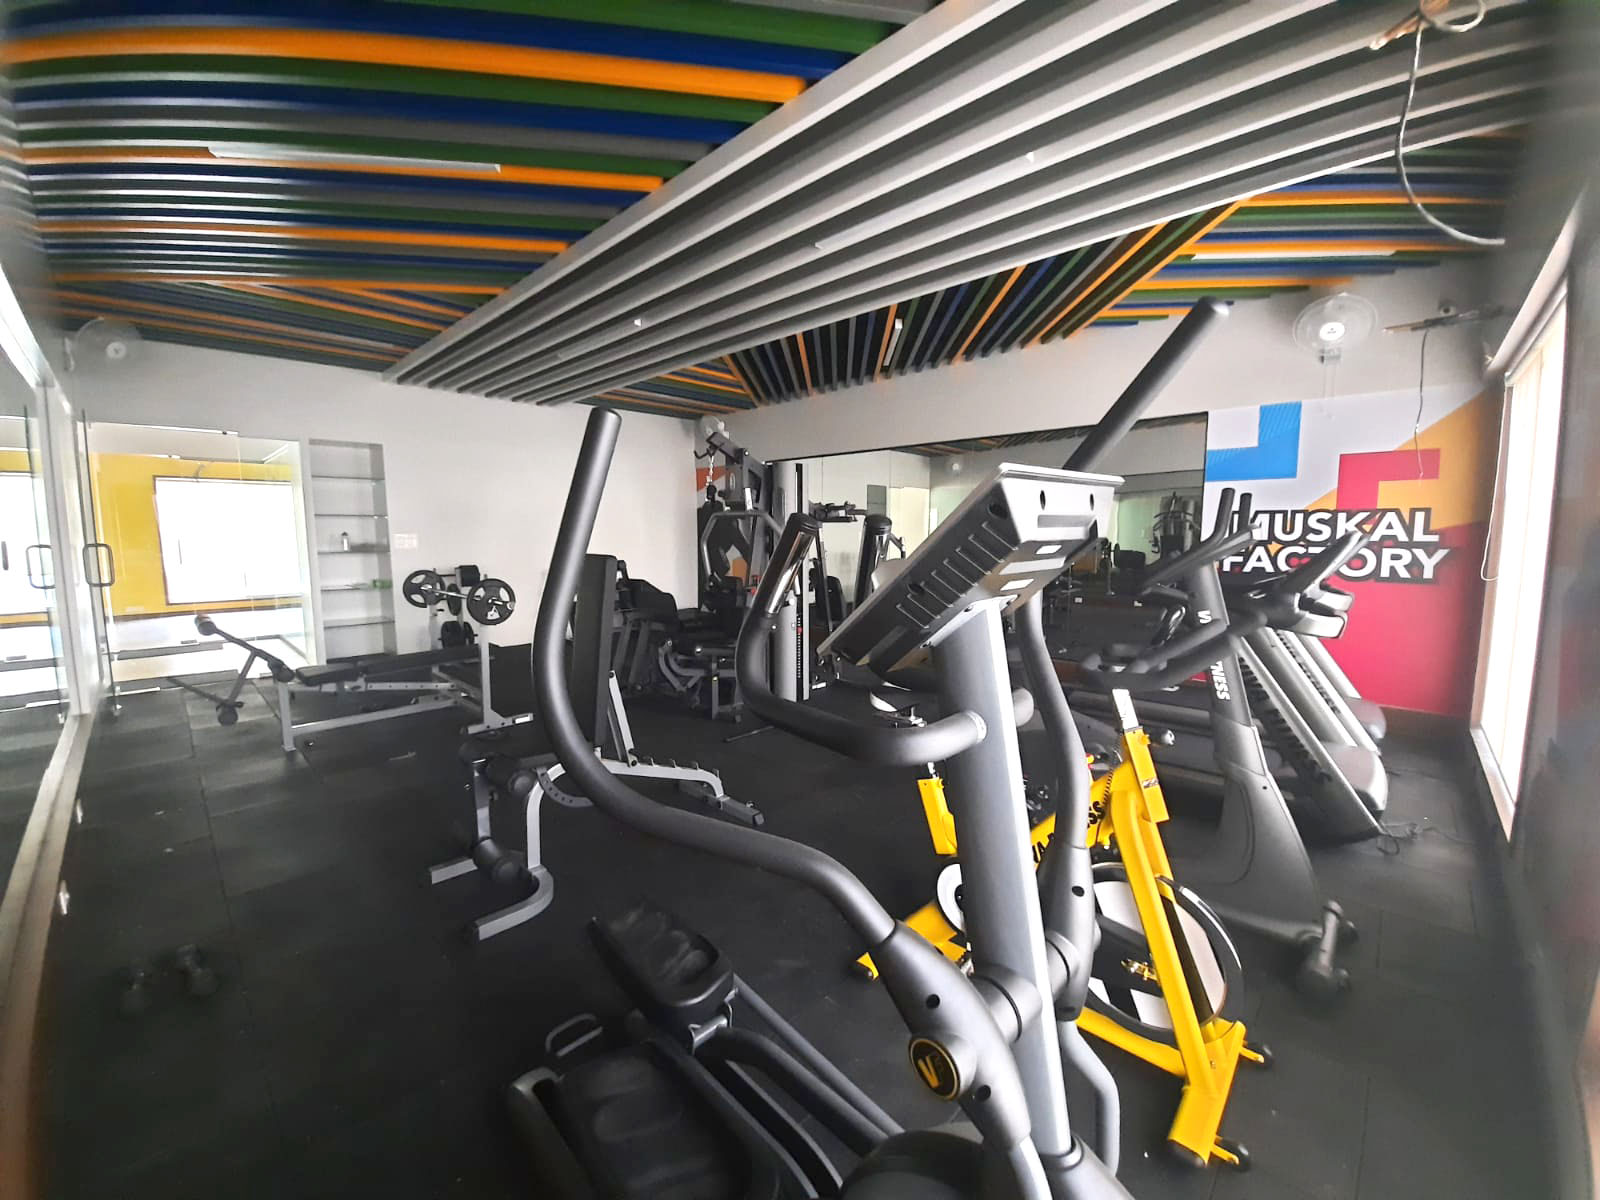 ISMS MBA college Pune hostels provide gym facility for students